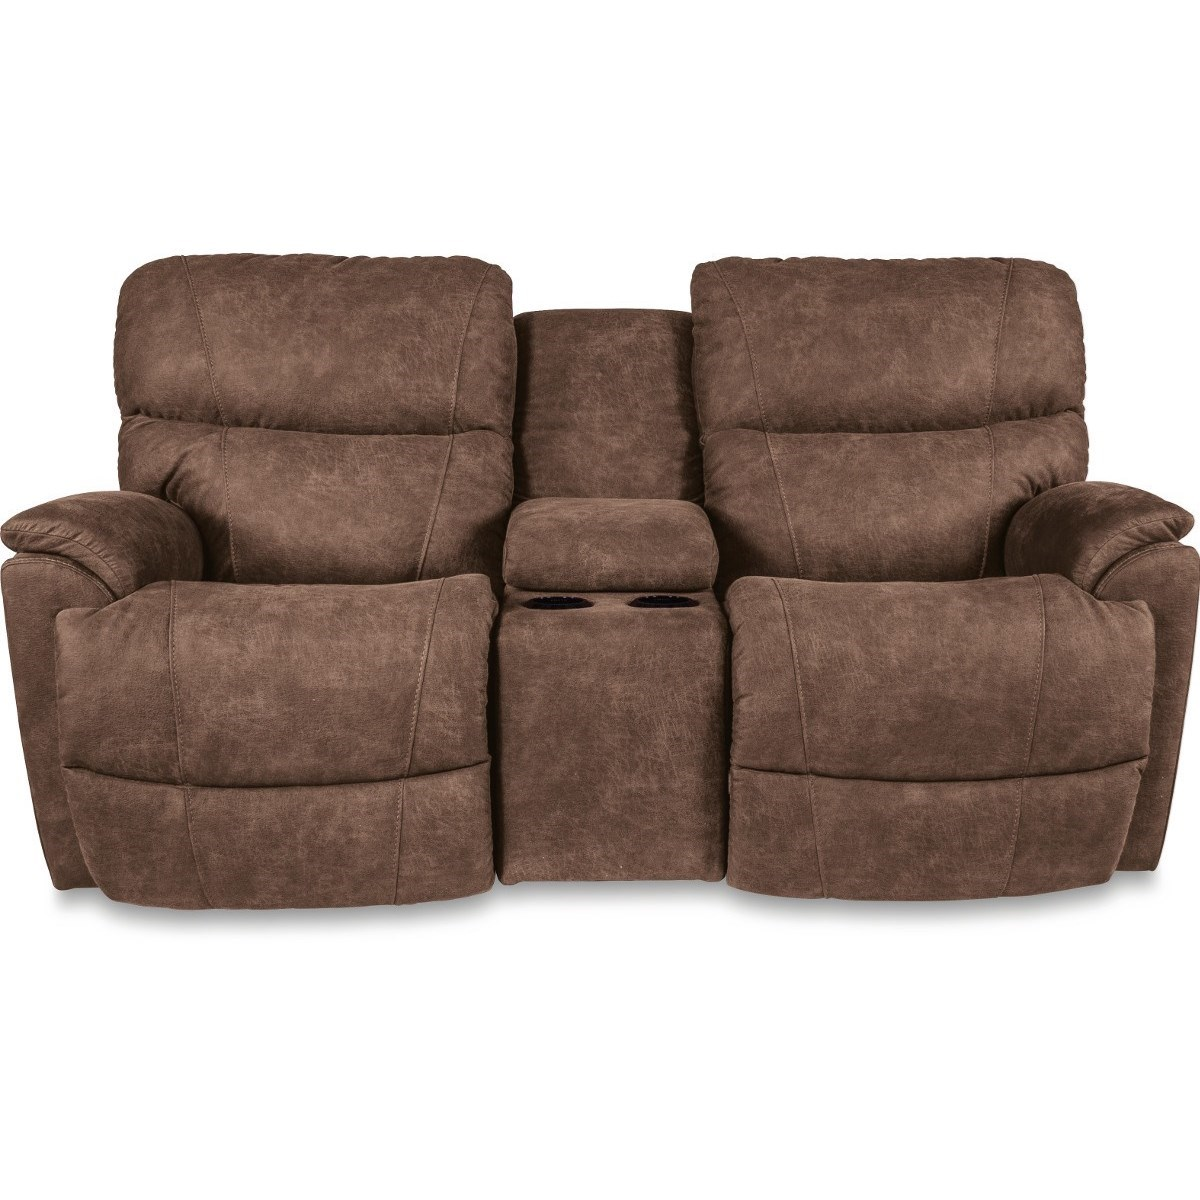 Trouper Power Reclining Loveseat w/ Console by La-Z-Boy at Bennett's Furniture and Mattresses